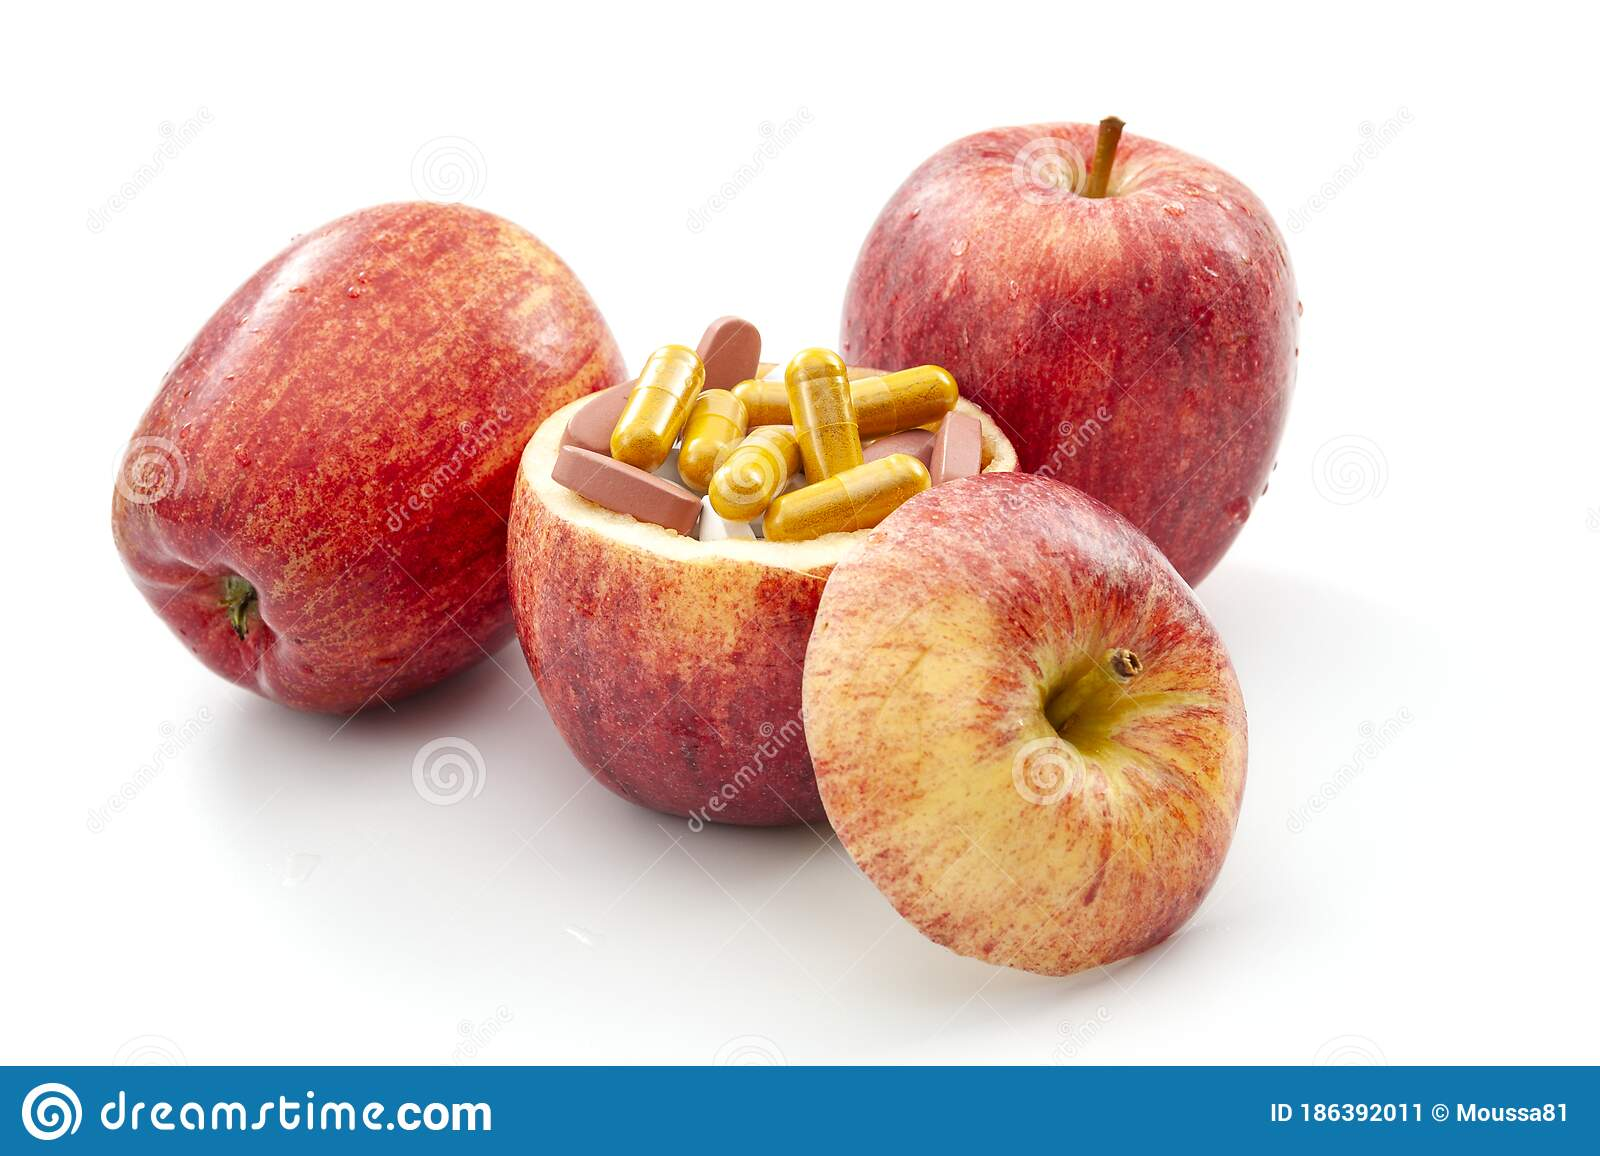 Nourishing Diet And Replenish Vitamins Minerals And Supplements Through Healthy Organic Food Concept With Apples Full Of Vitamin Stock Image Image Of Help Colour 186392011